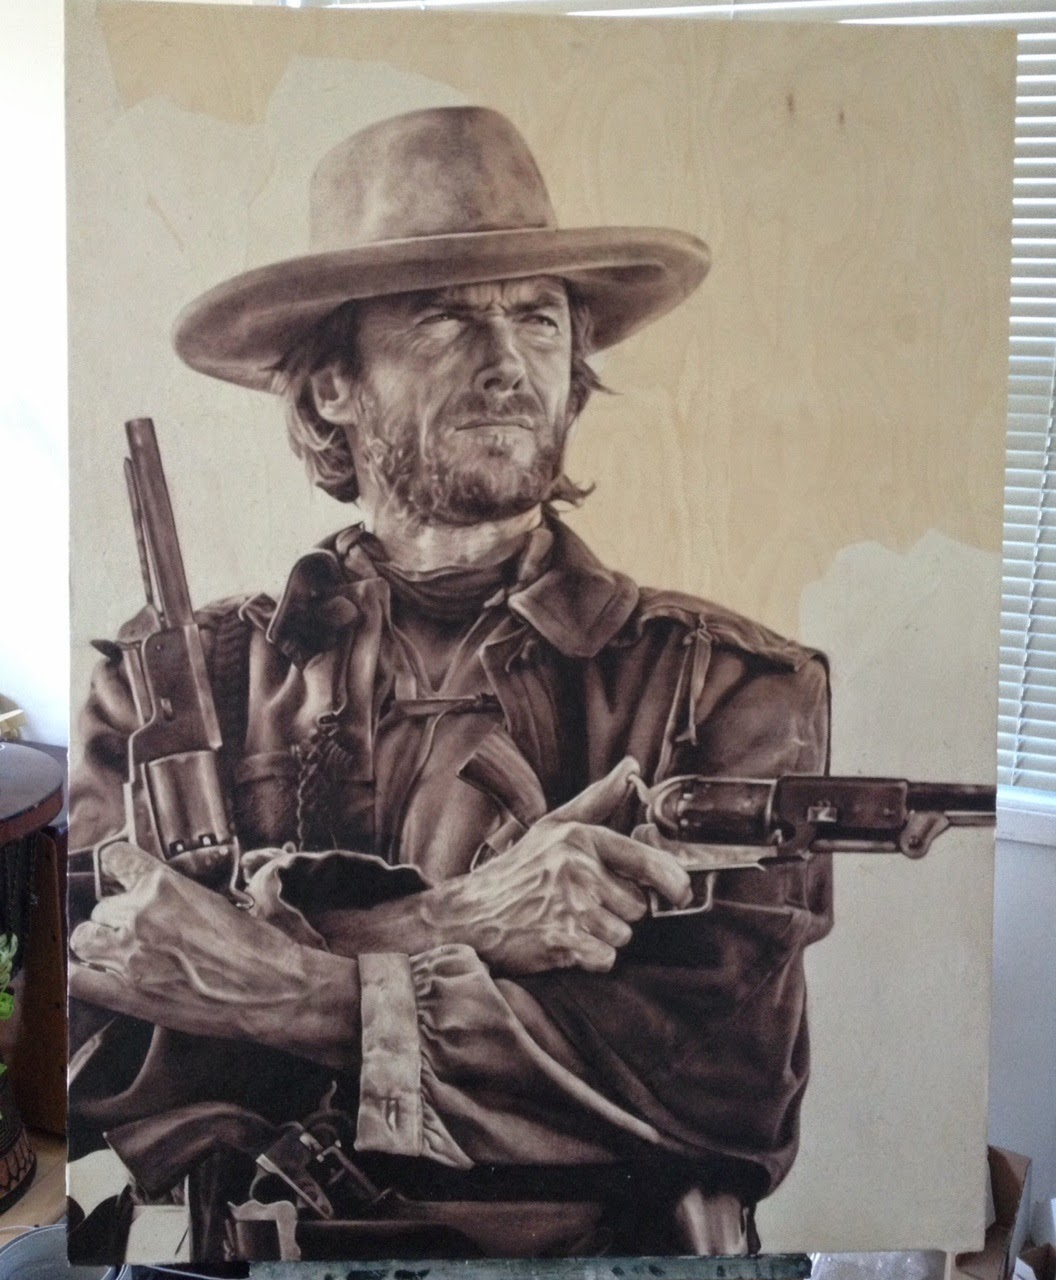 Clint Eastwood, Oil painting, Wood panel canvas